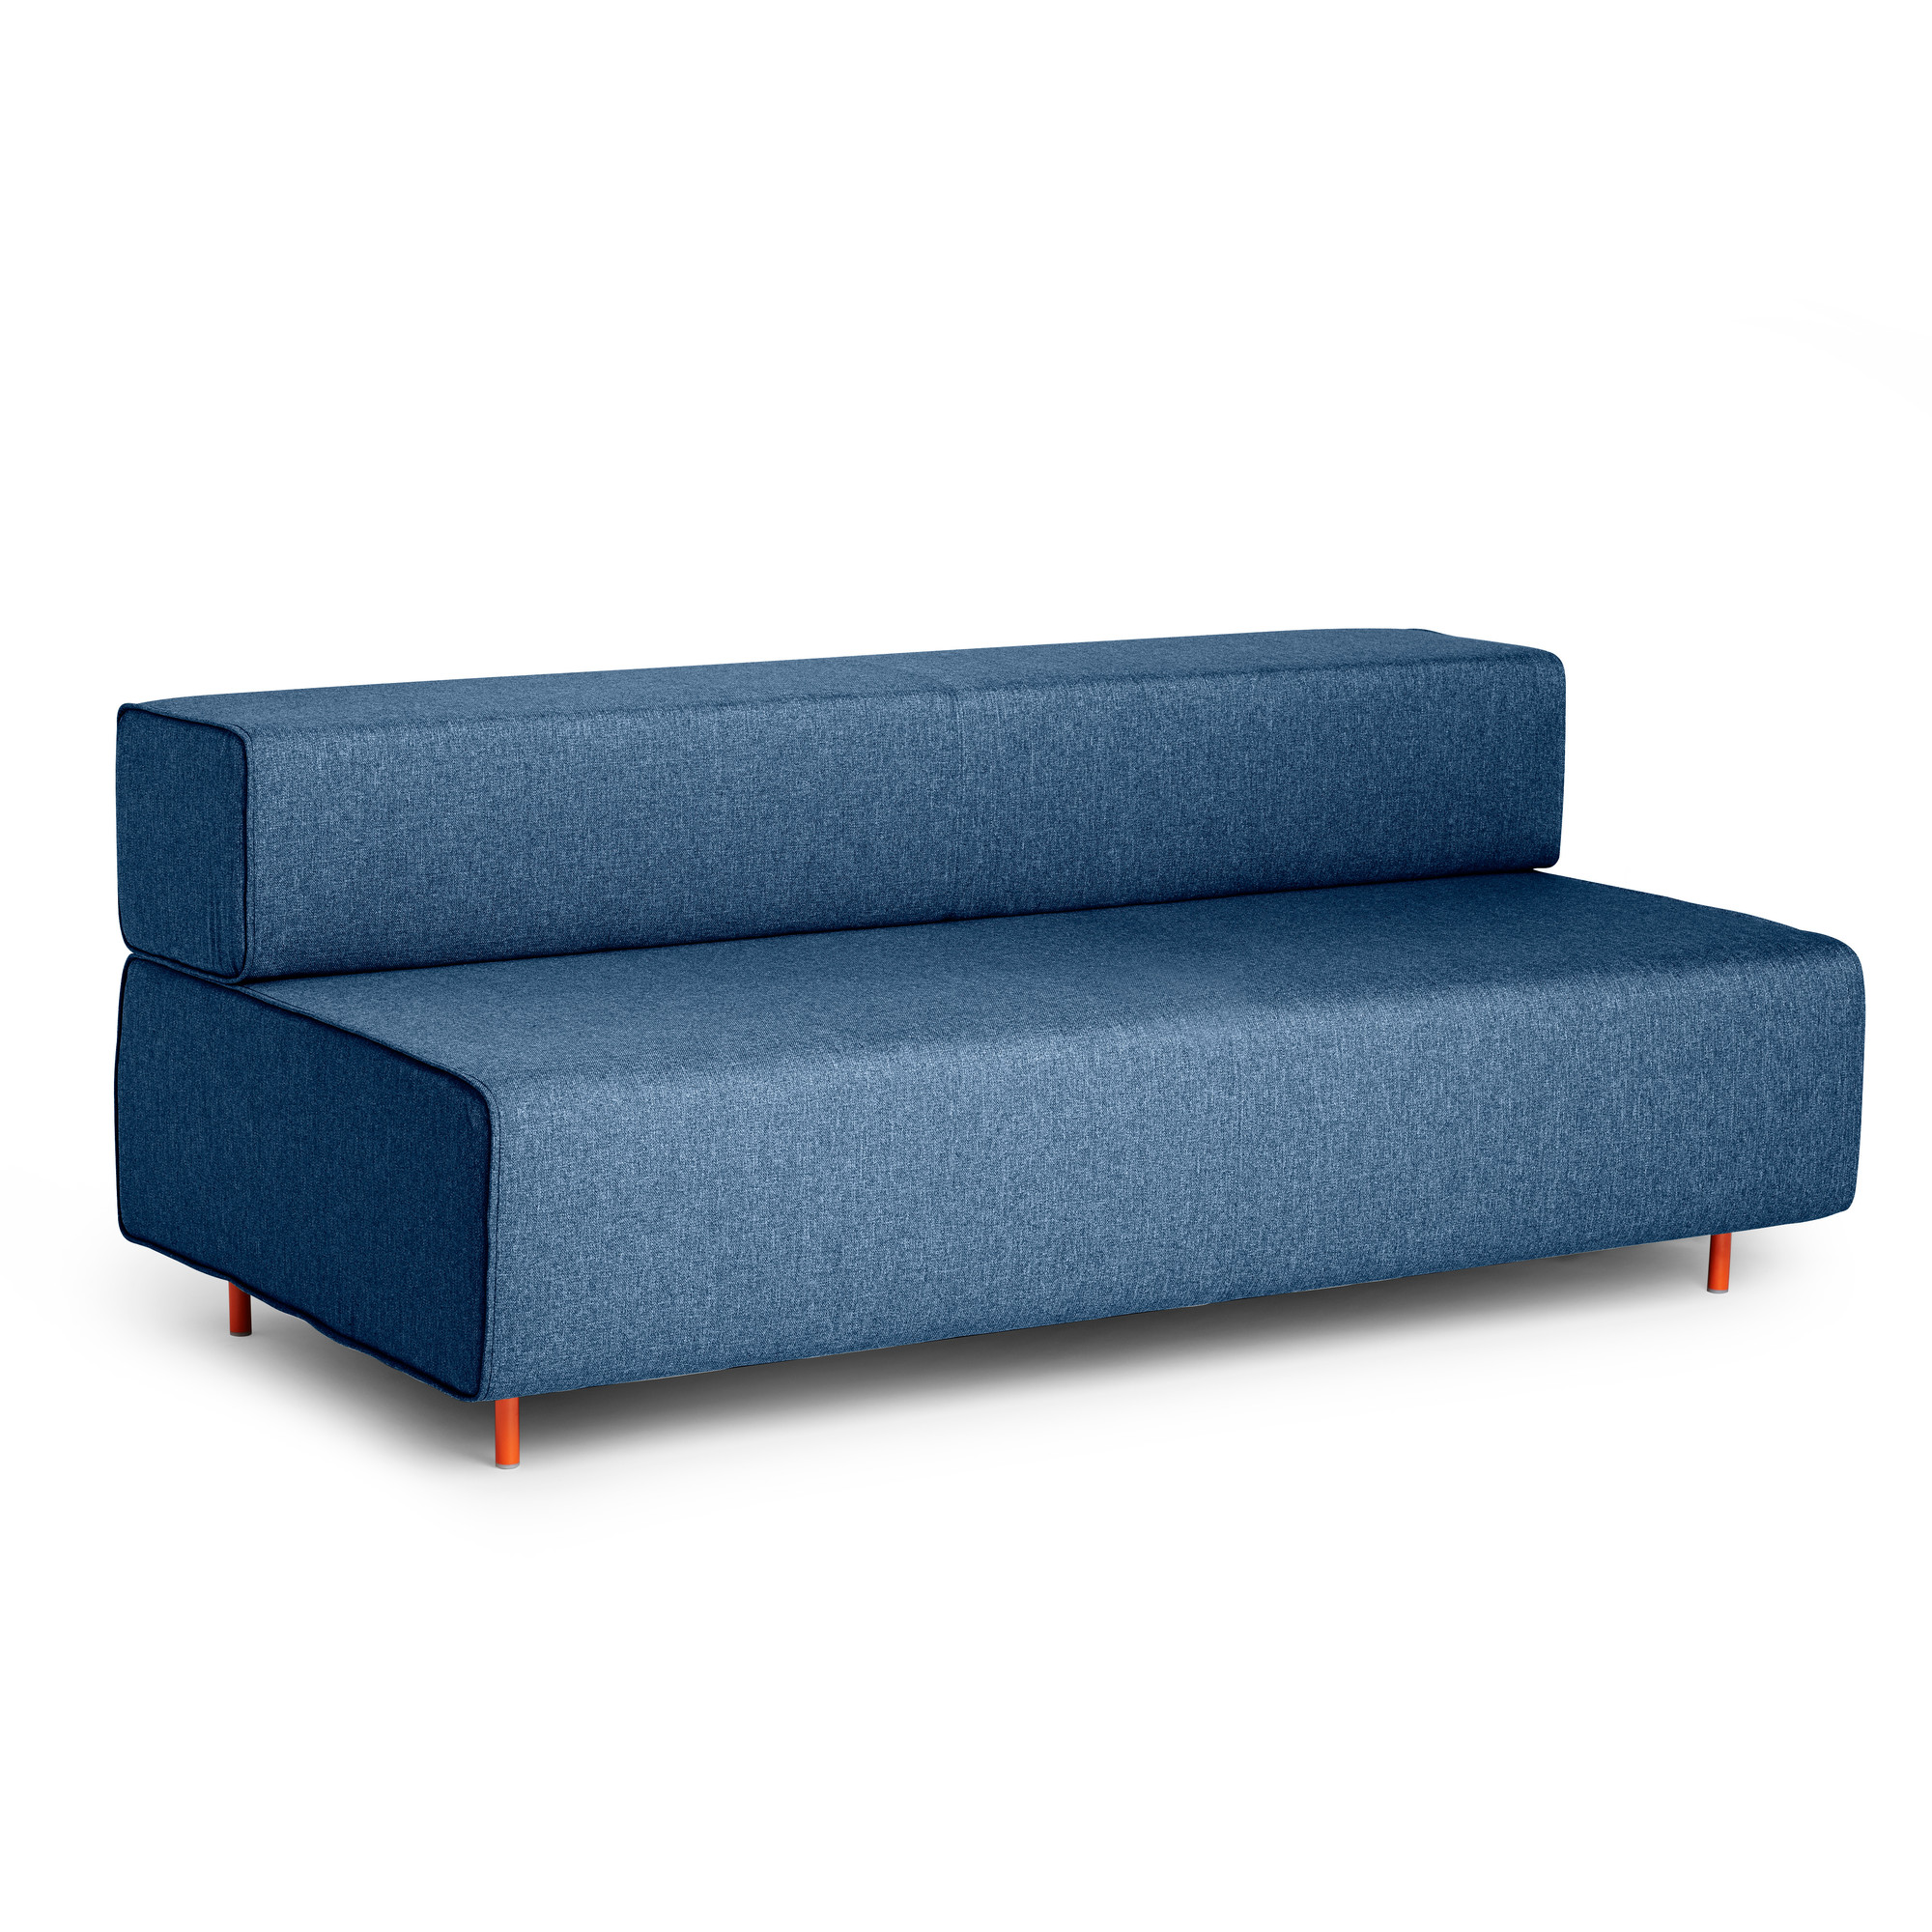 Grey Sofa In Lounge Dark Blue Block Party Lounge Sofa Lounge Seating Poppin